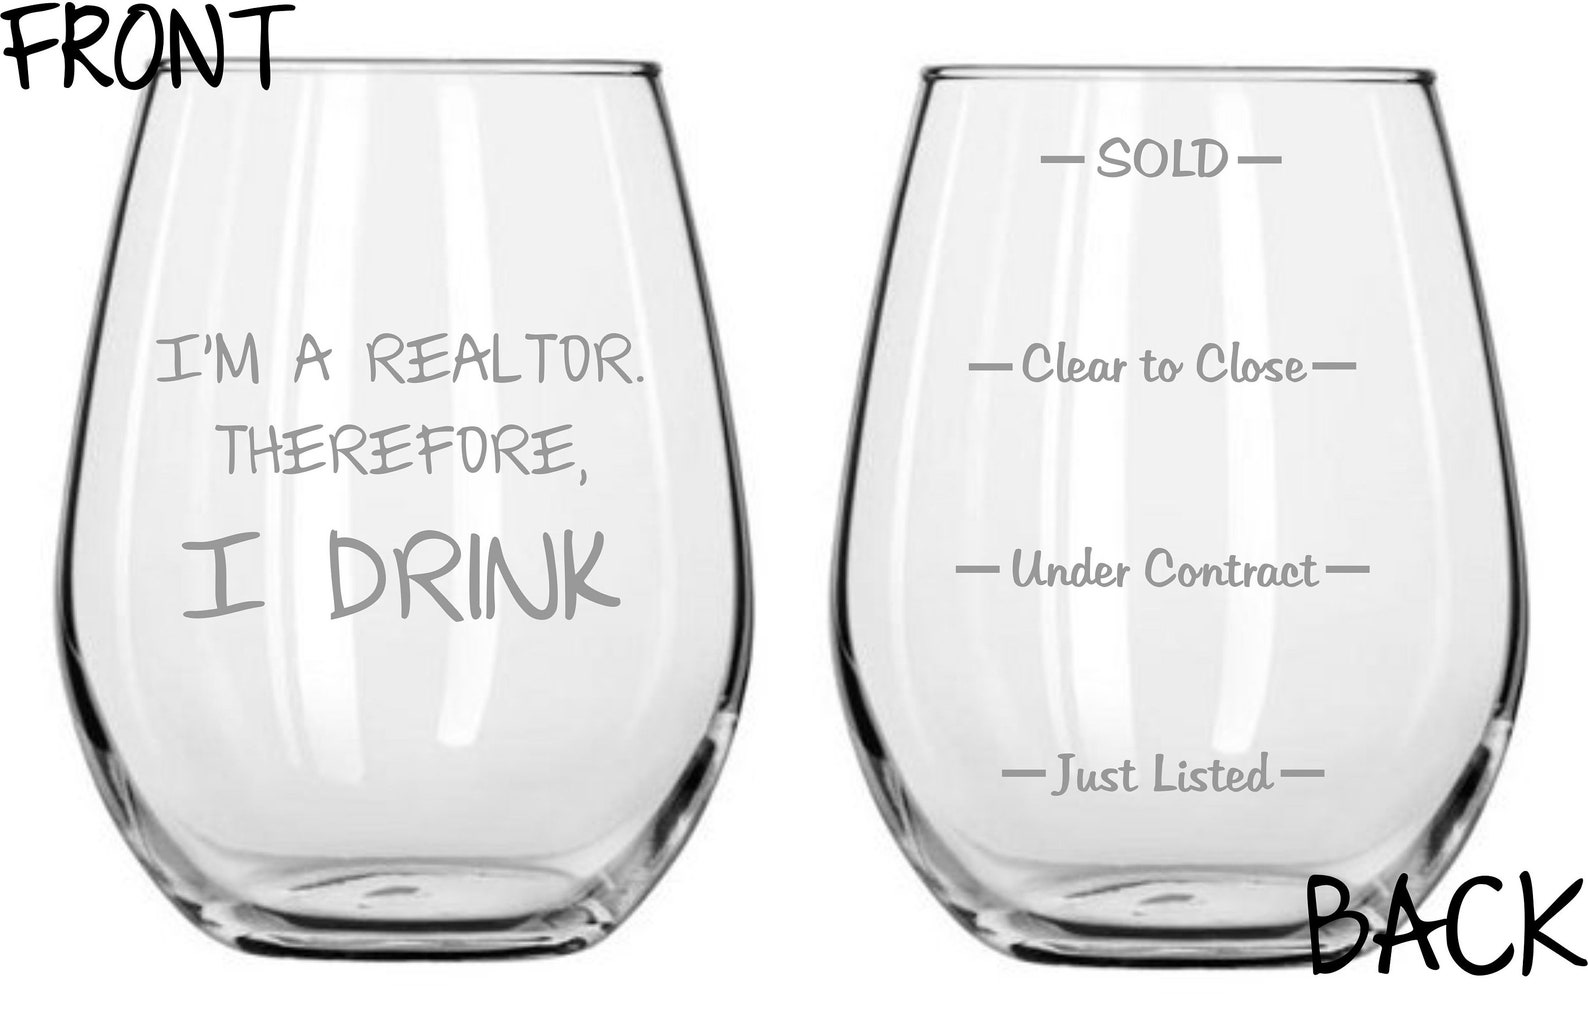 I'm a Realtor. Therefore, I drink.